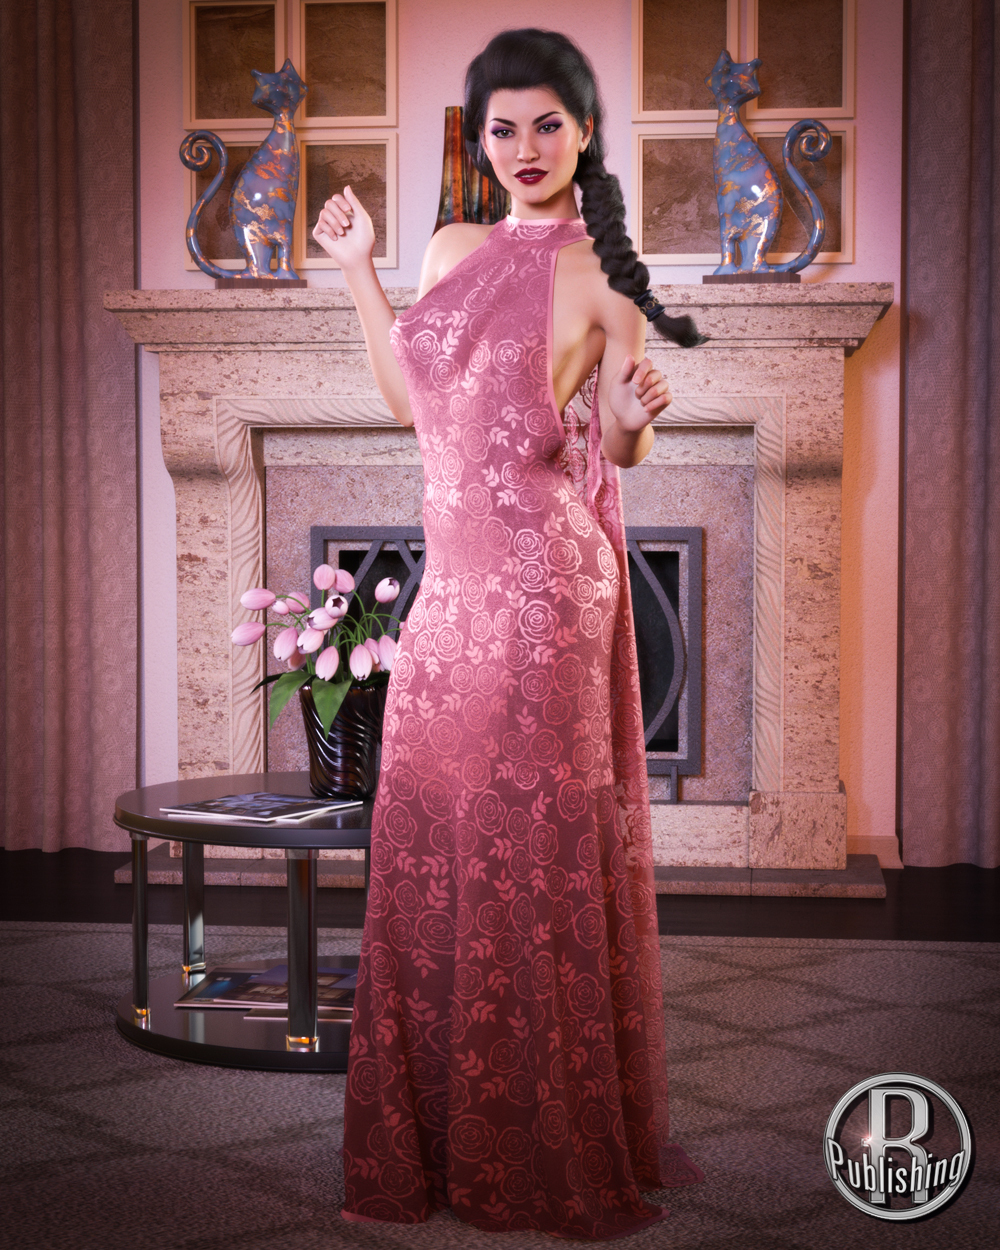 Lavinia in Pink by RPublishing